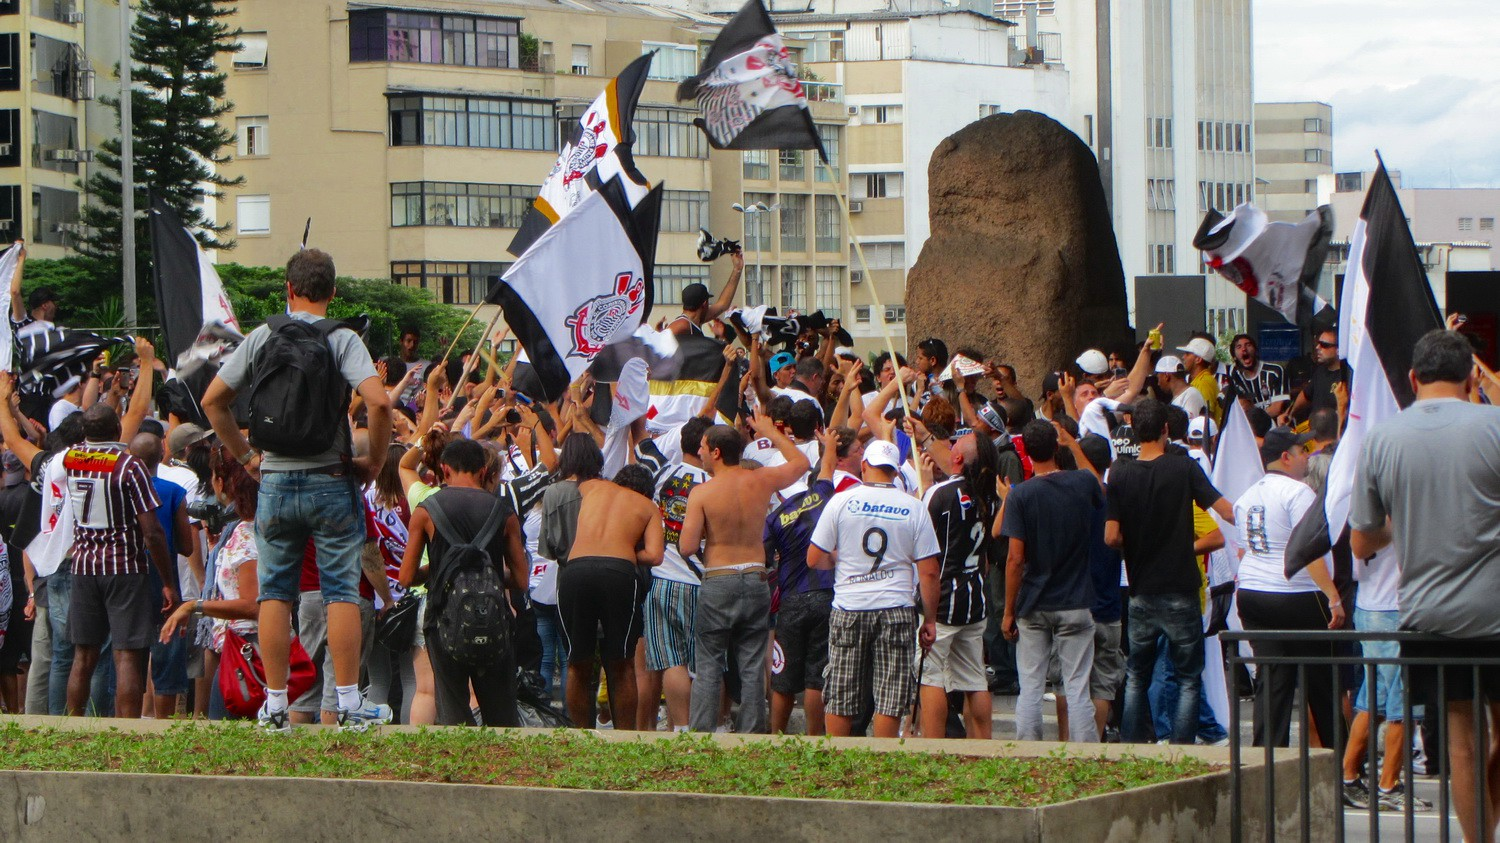 Celebrating fans of the football team Corinthians of Sao Paulo because it won the FIFA World Championship for clubs today (against Chelsea)